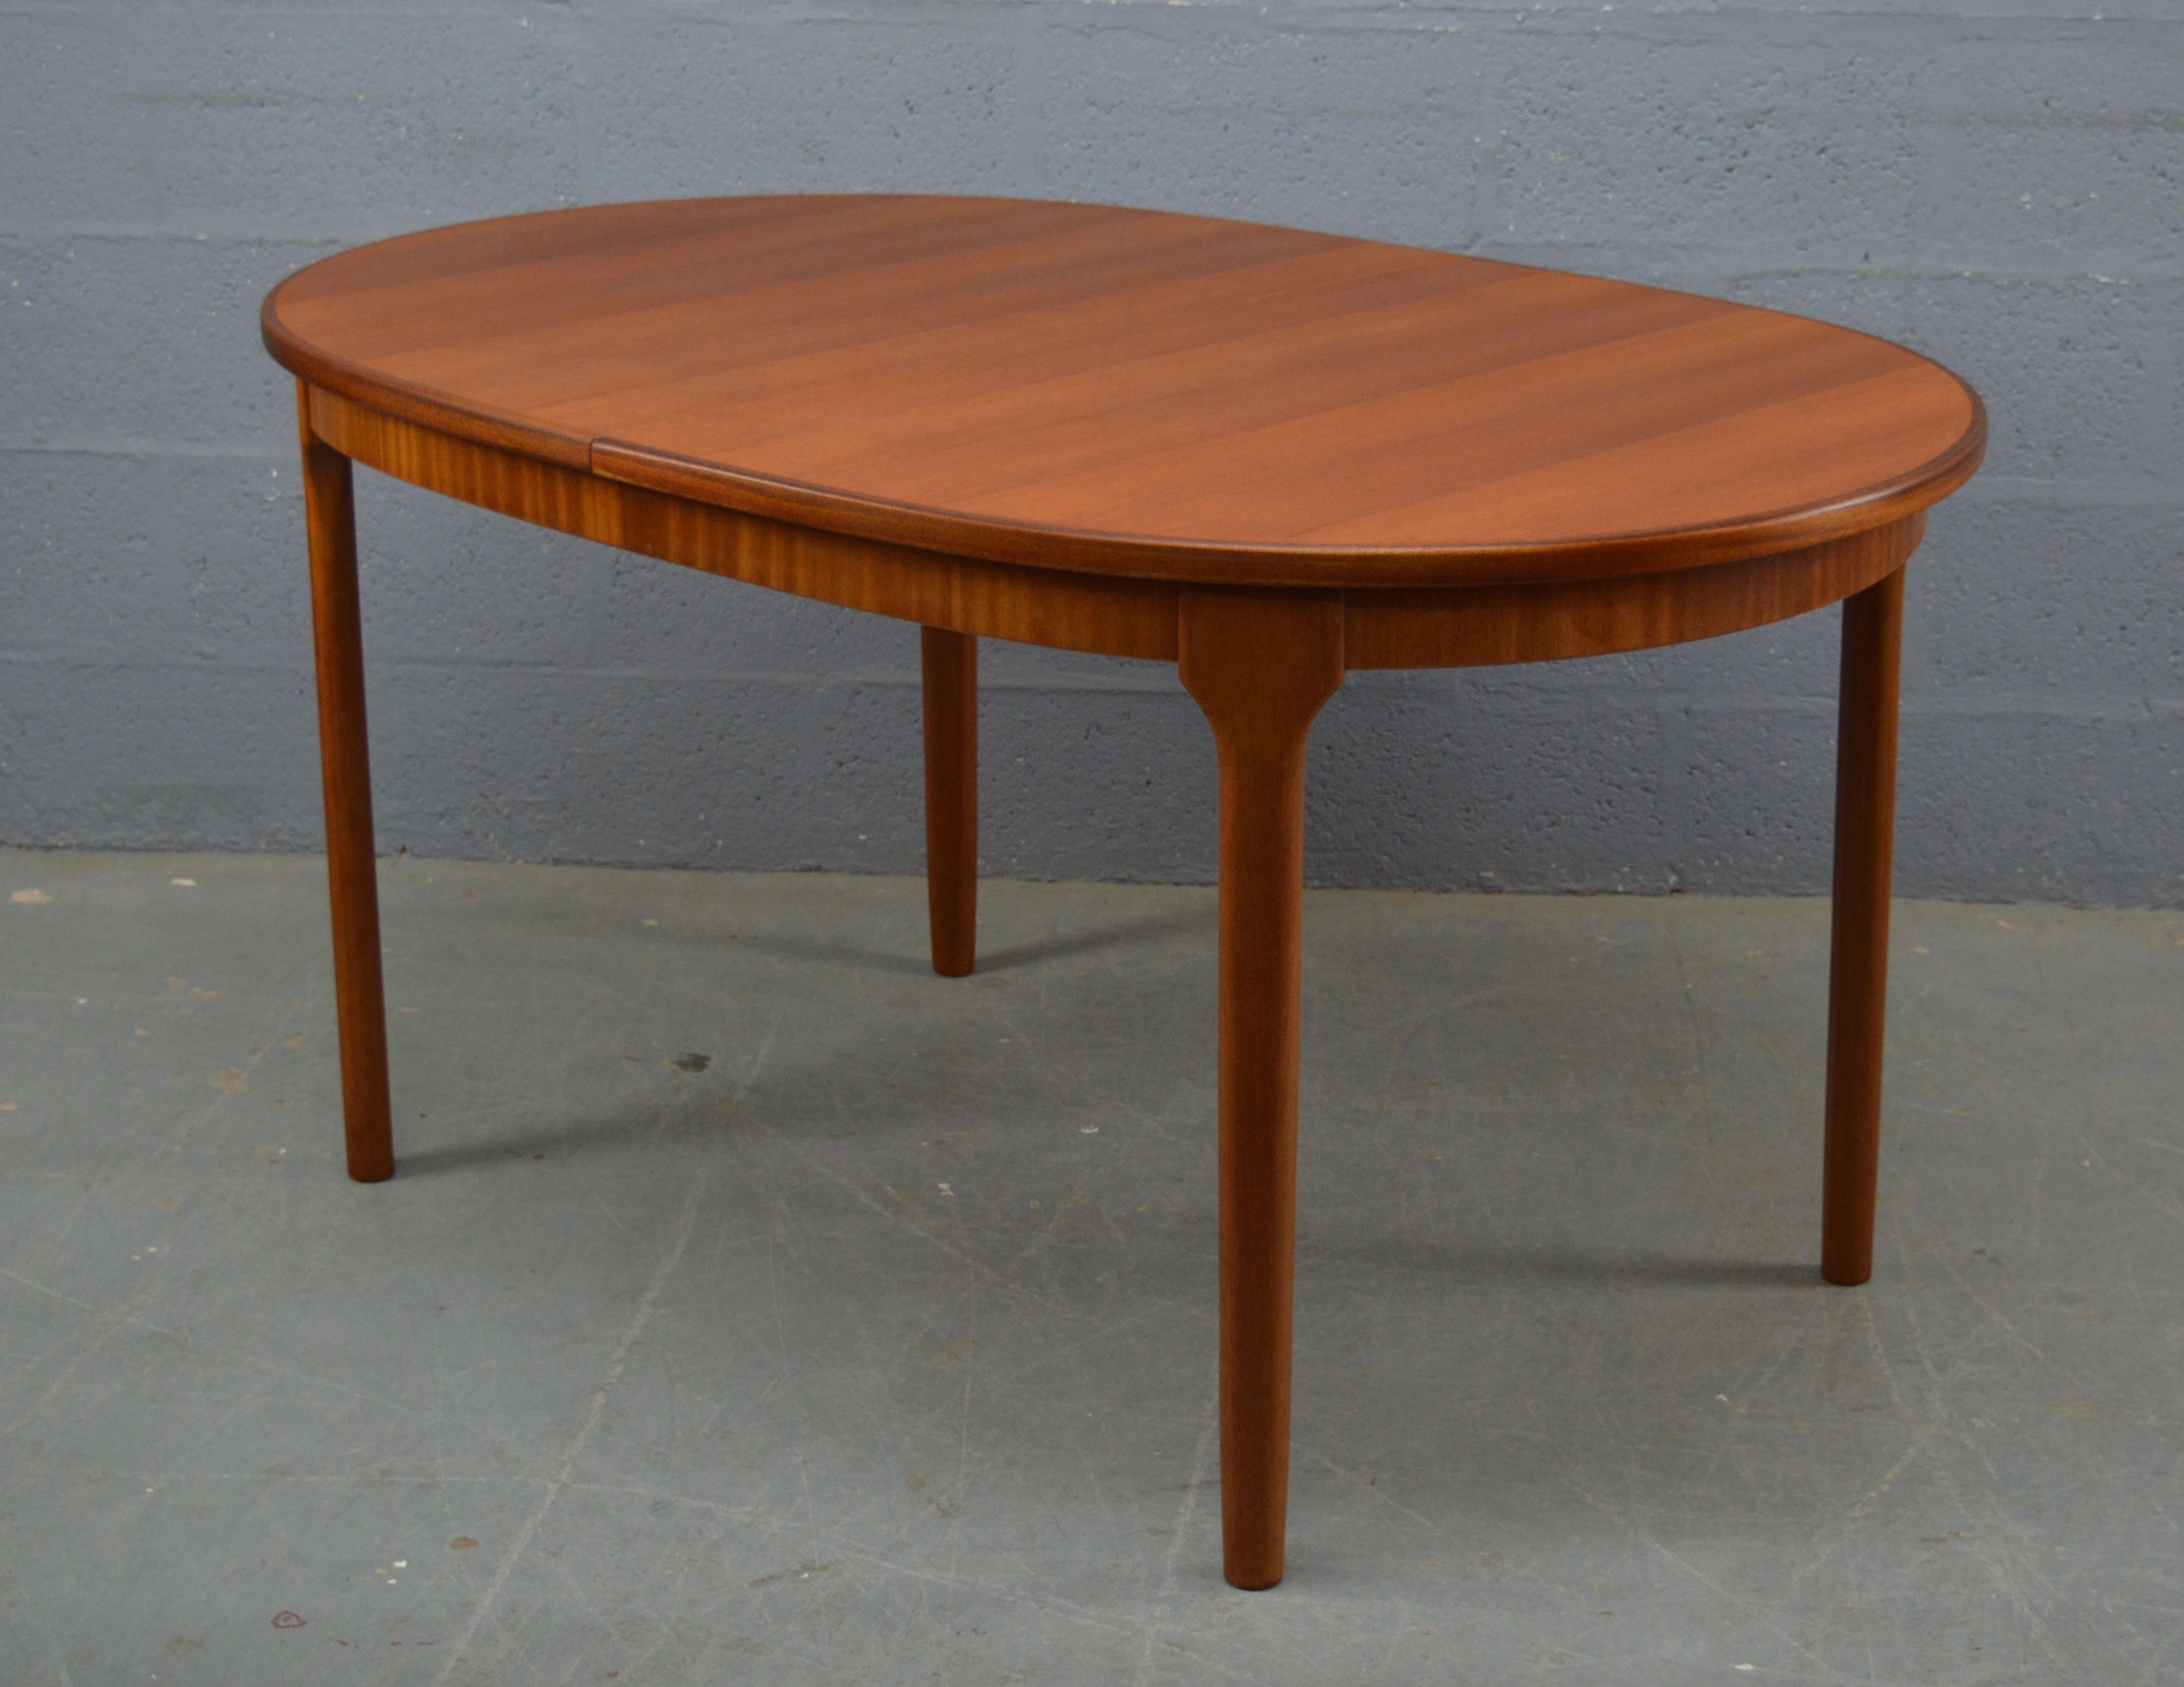 Vintage 1970s Mid Century Oval Dining Table By Mc Intosh Dinning